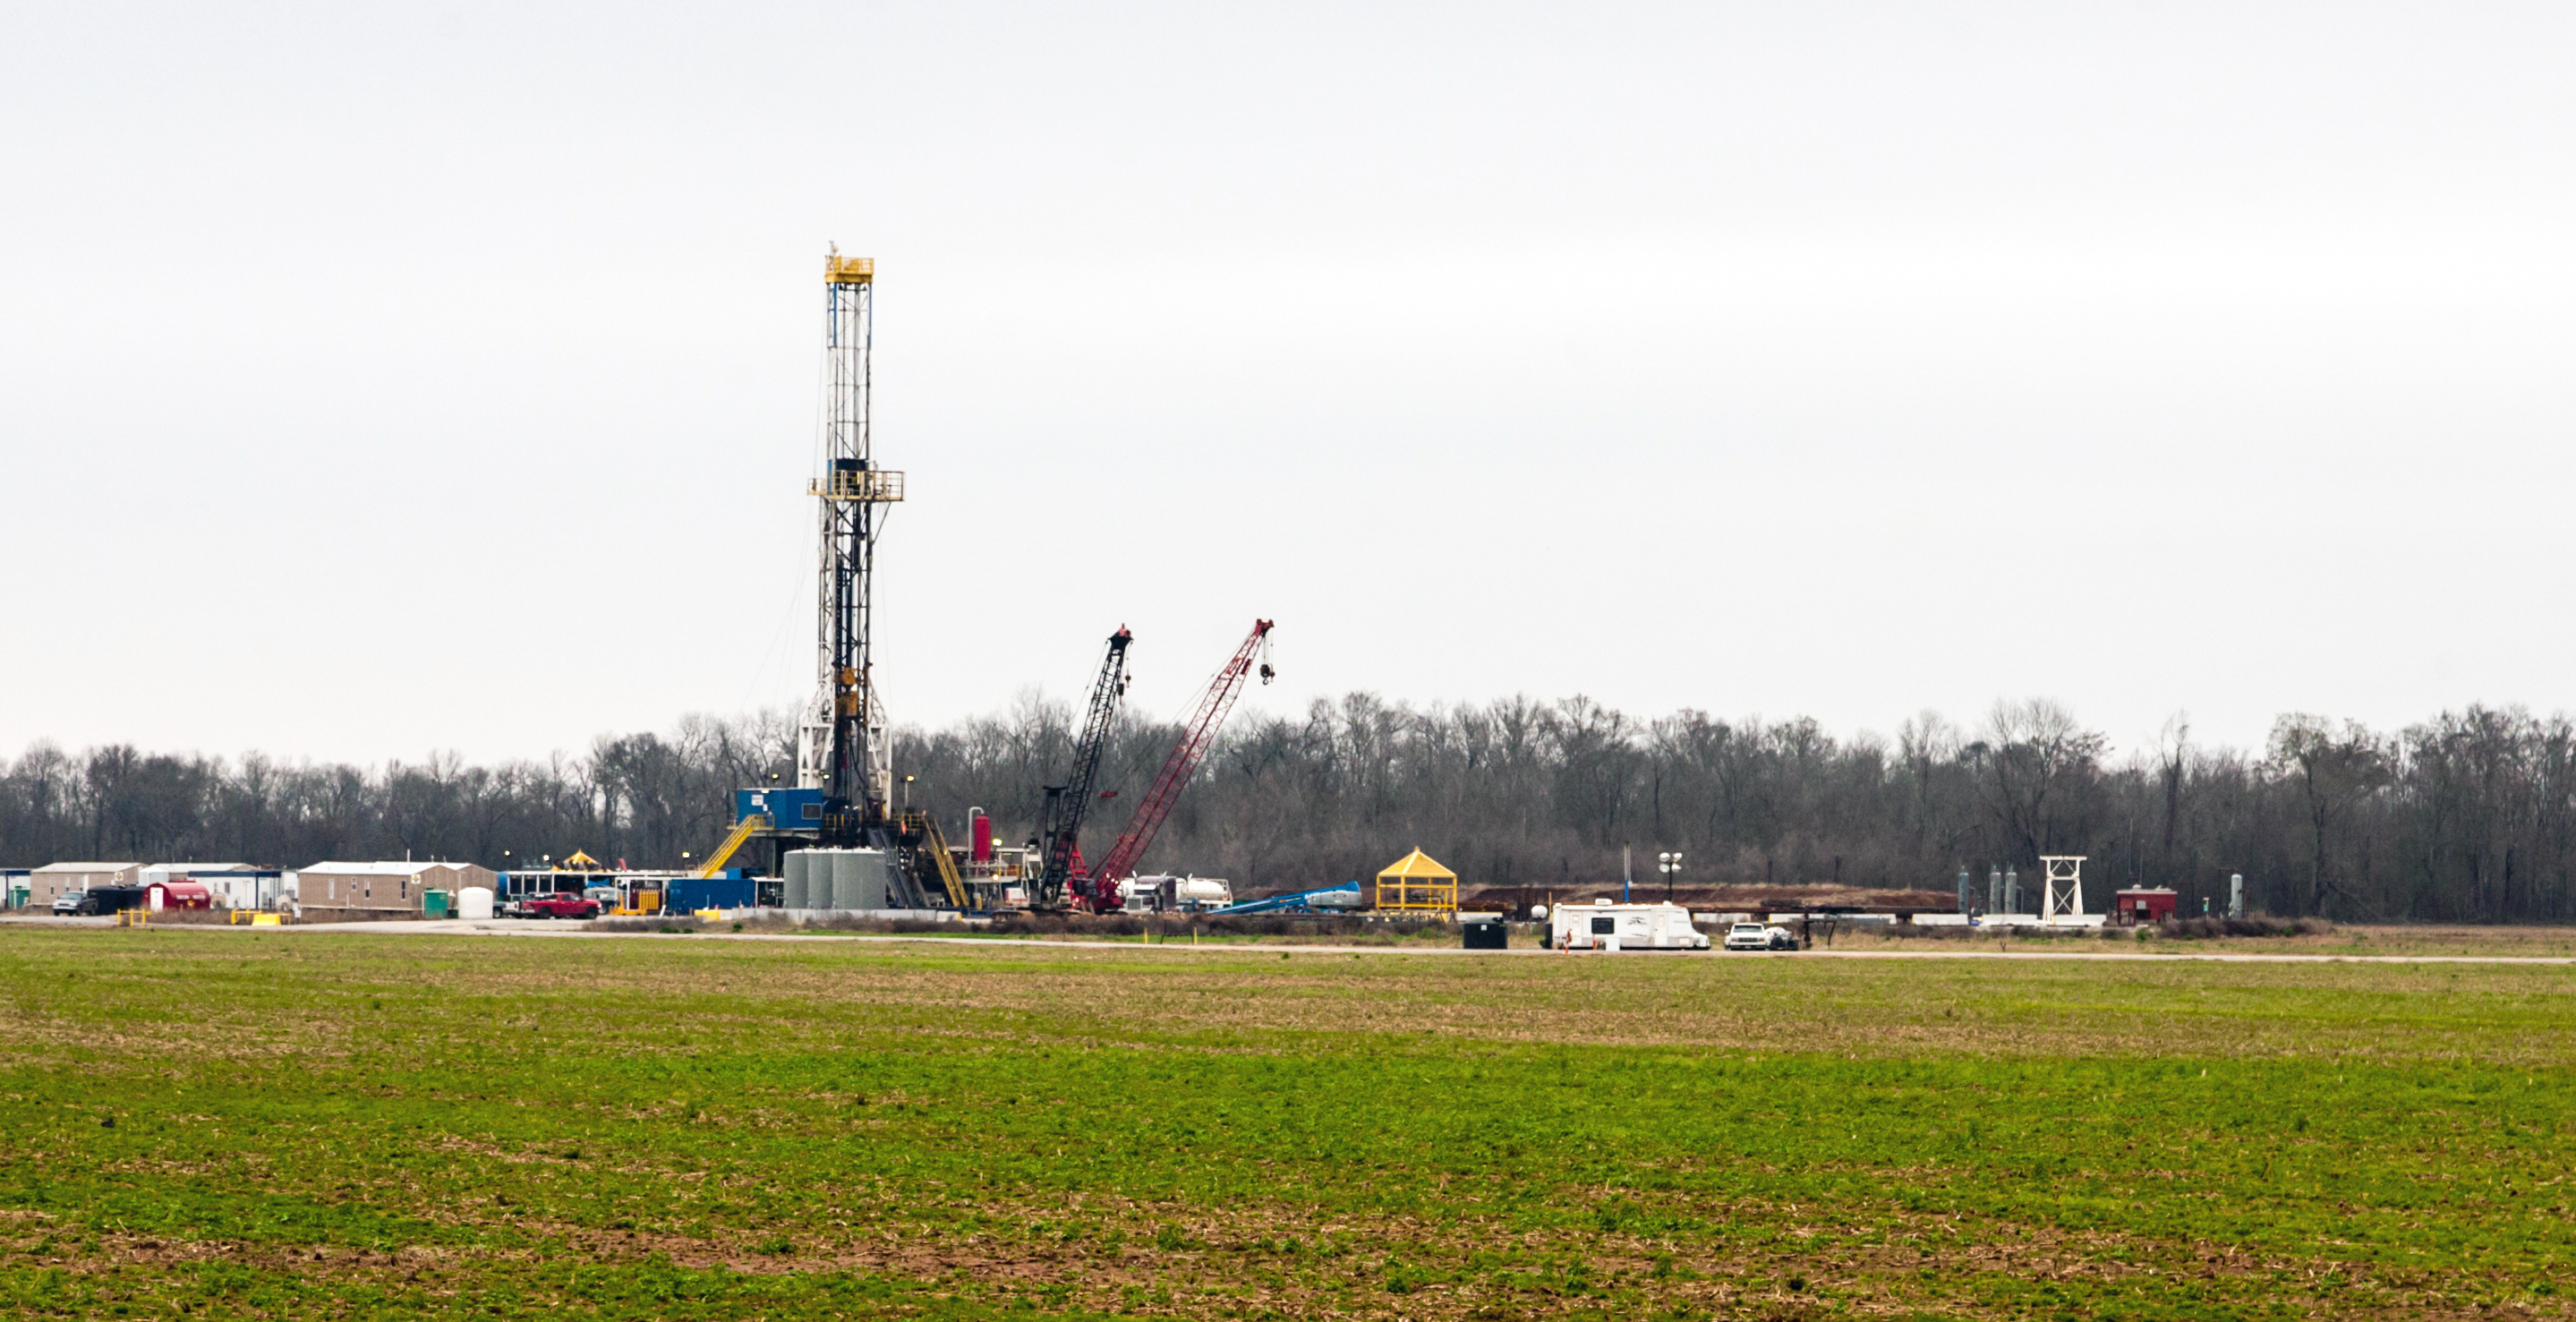 Fracking on the Haynesville Shale near Shreveport, La. (Photo/Daniel Foster, Flickr)